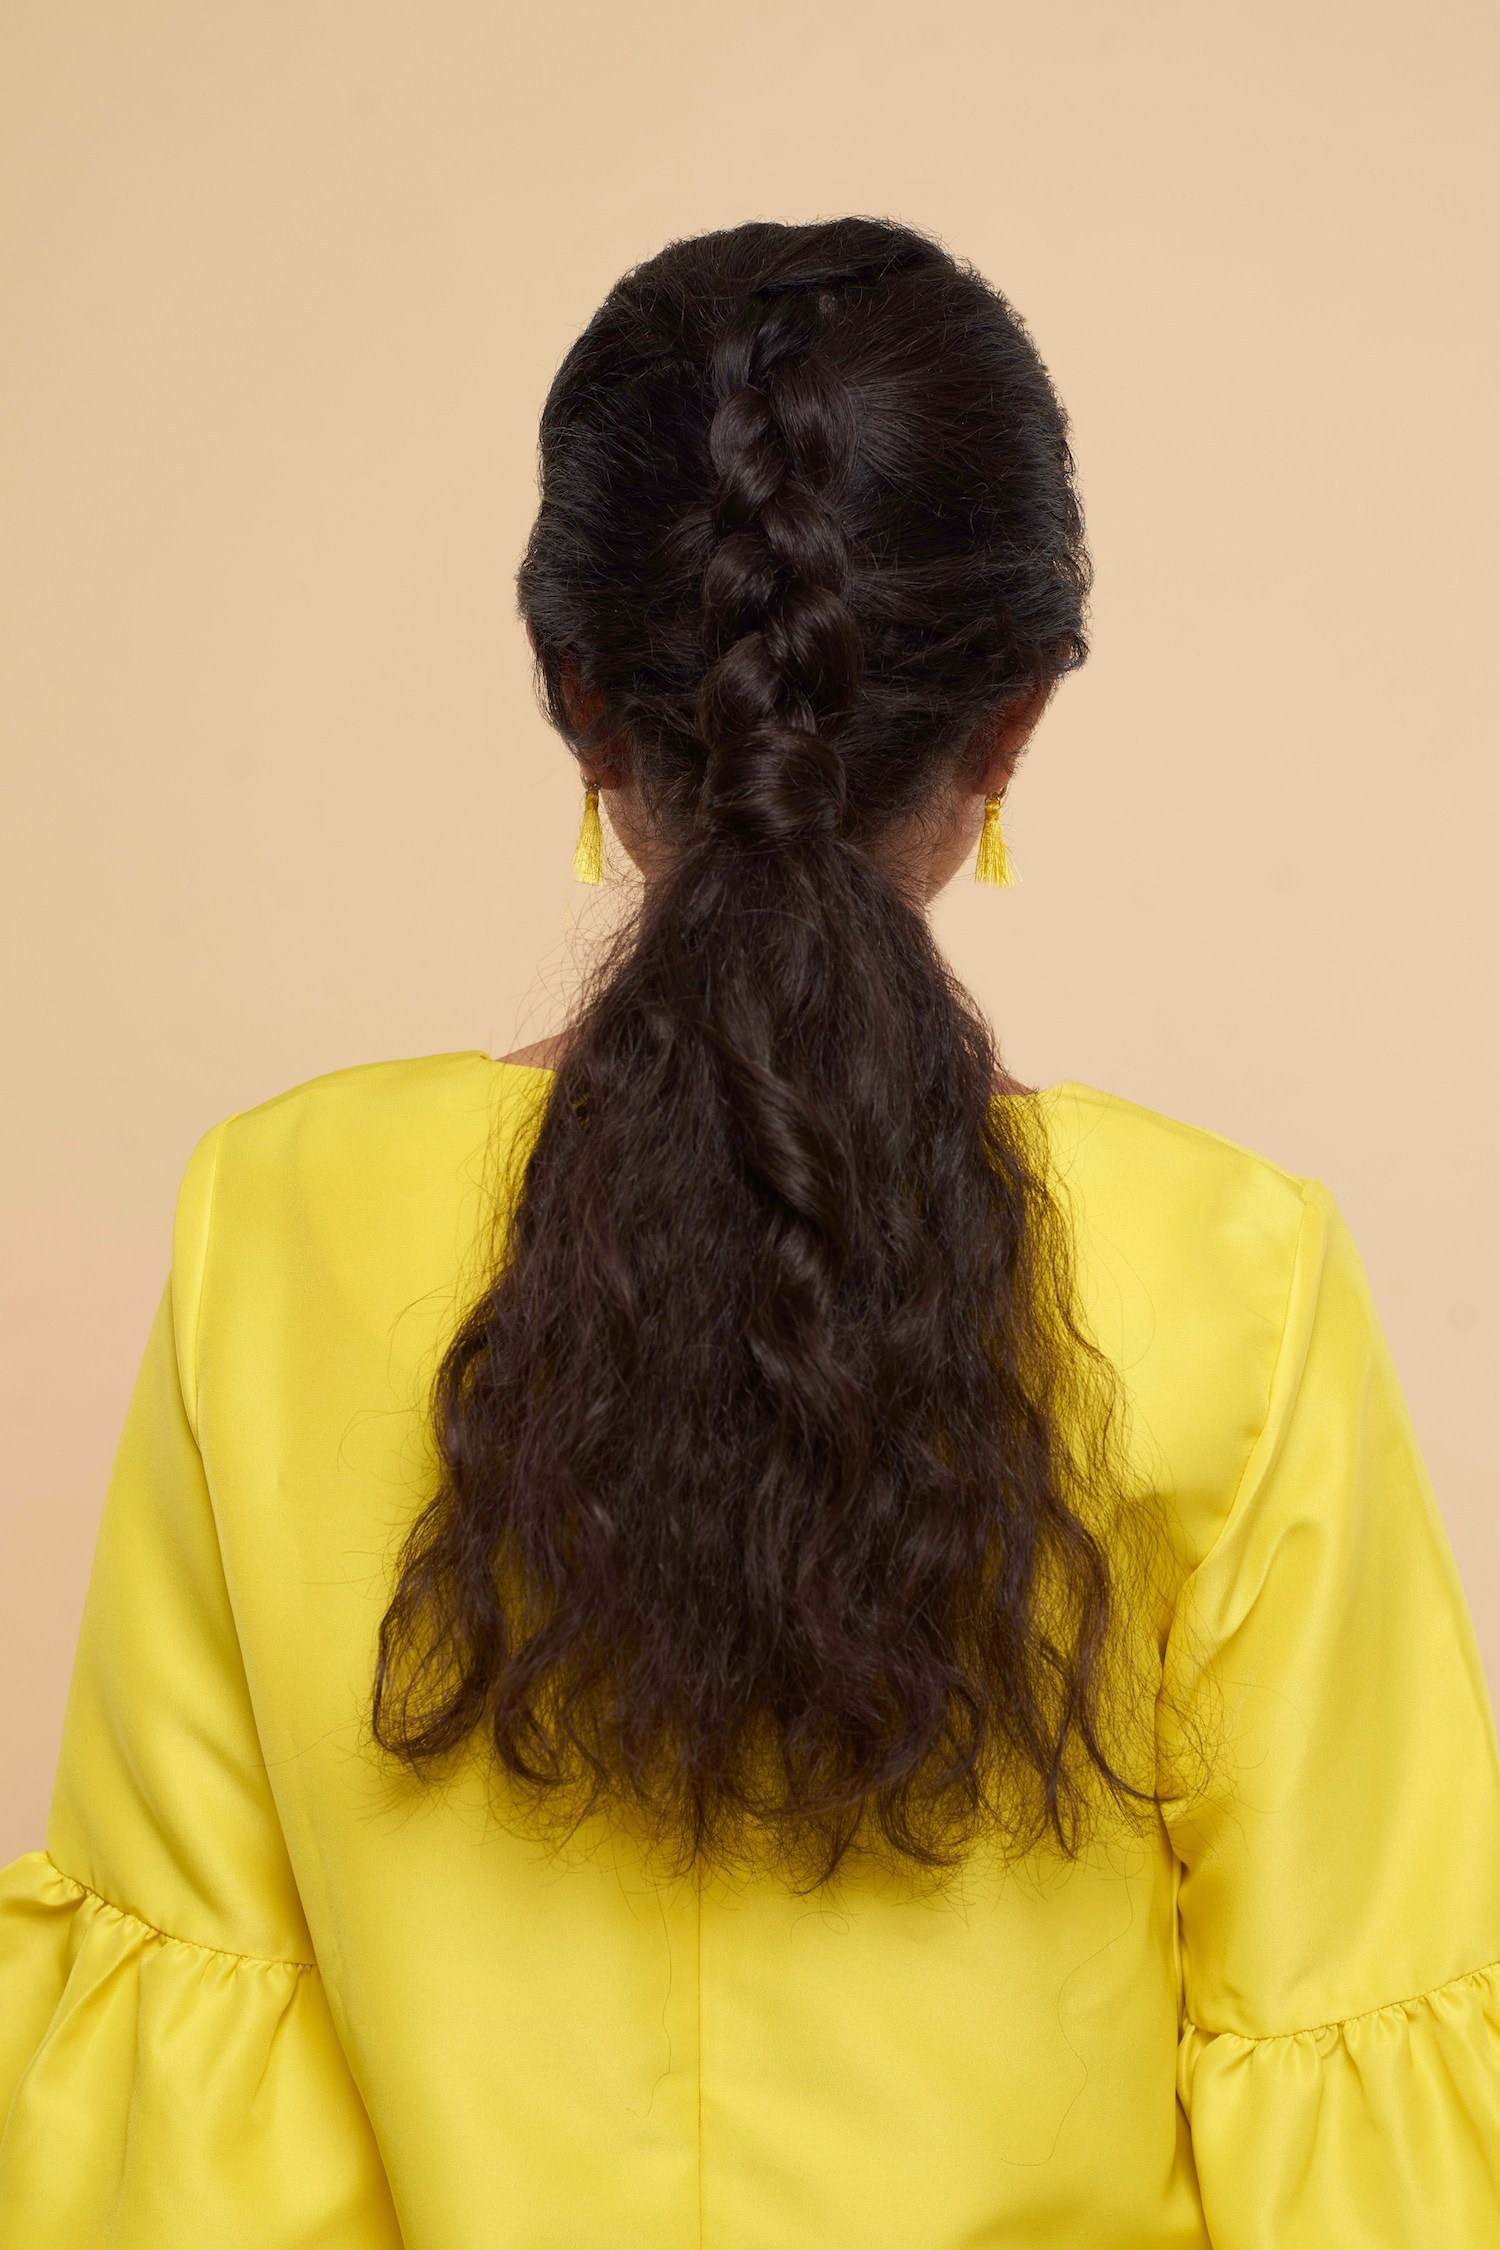 inverted braid atau Dutch braid